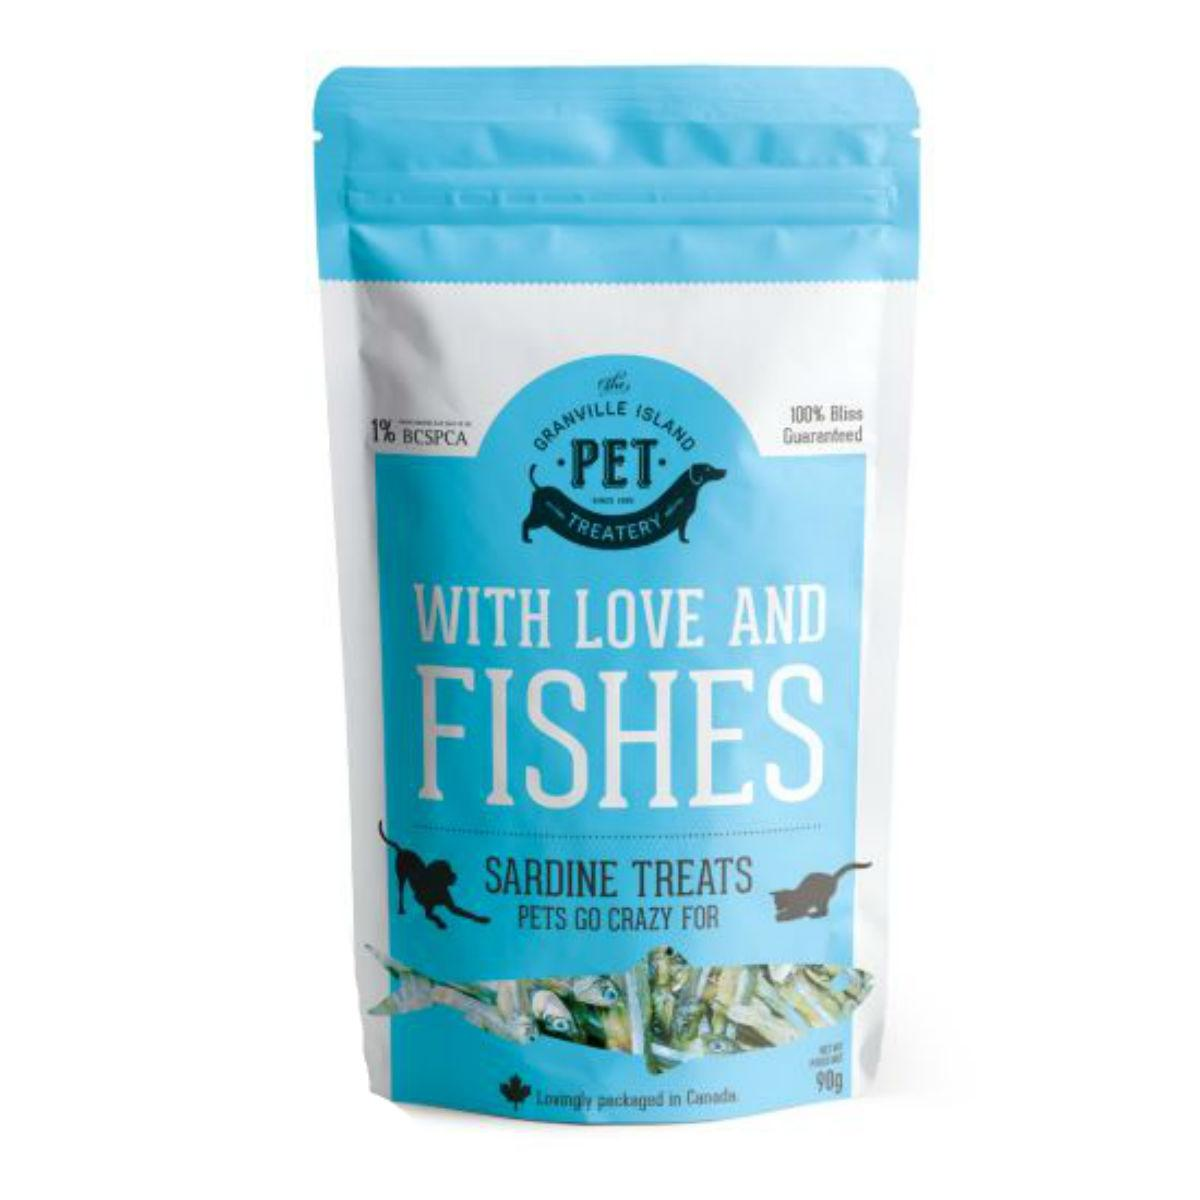 Granville Pure Protein Sardine Pet Treat - With Love and Fishes